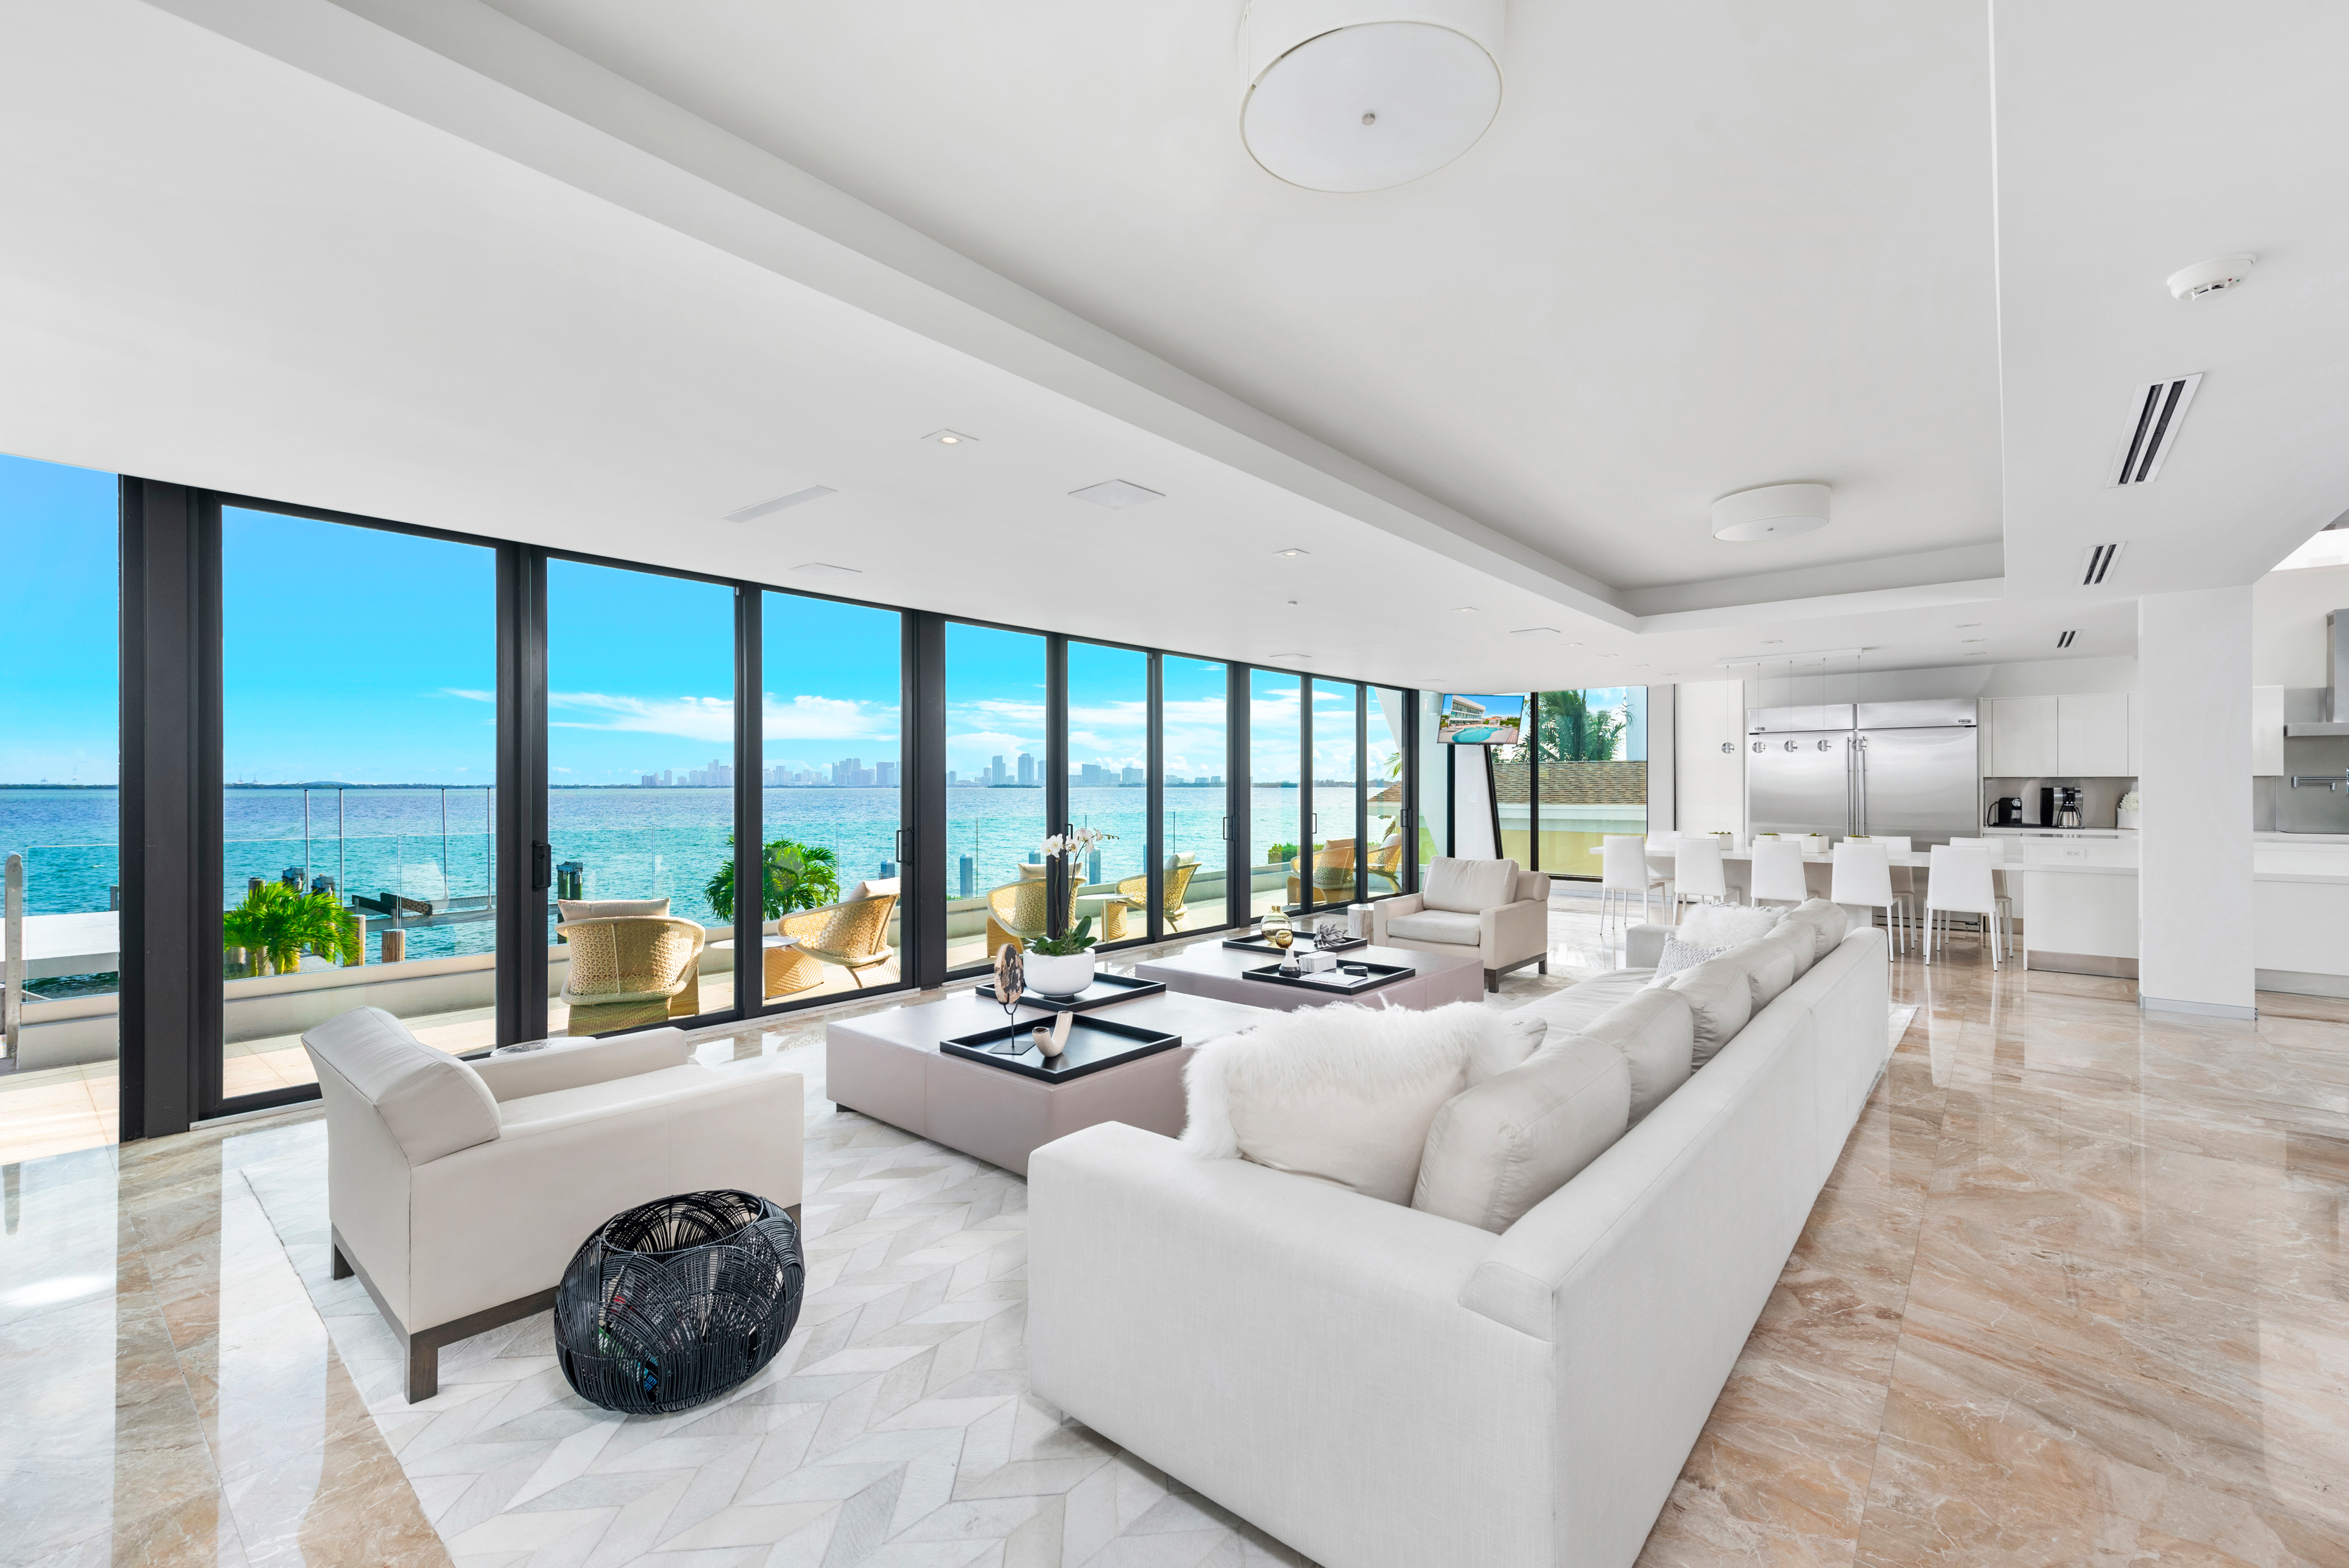 Image of Villa Violette - Luxury Contemporary Waterfront Villa Miami